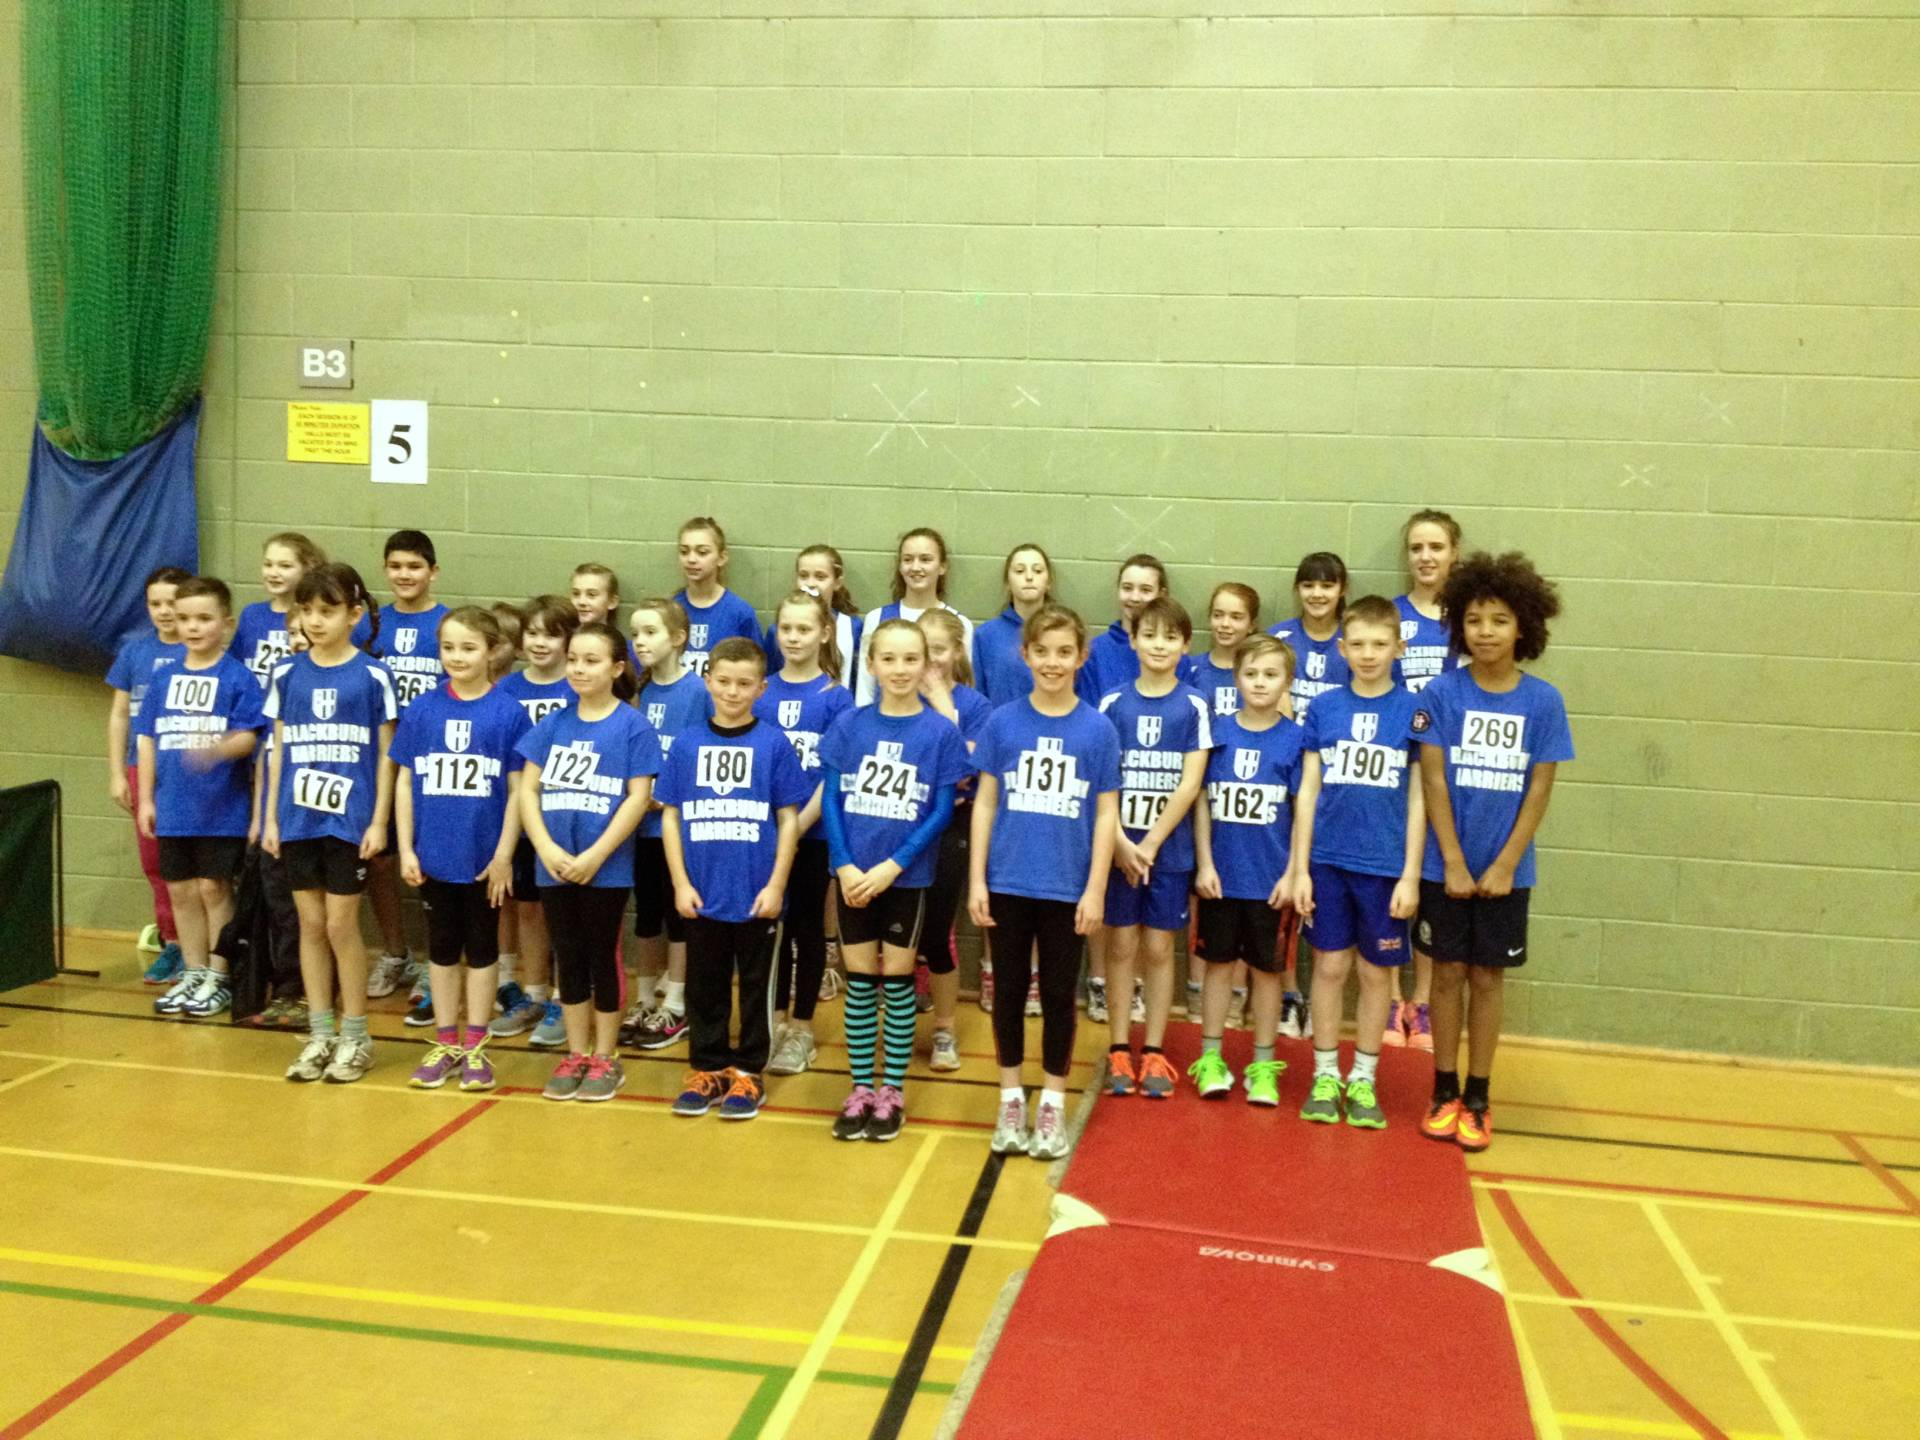 Harriers youngsters shine at Blackpool Sportshall and win County Vests